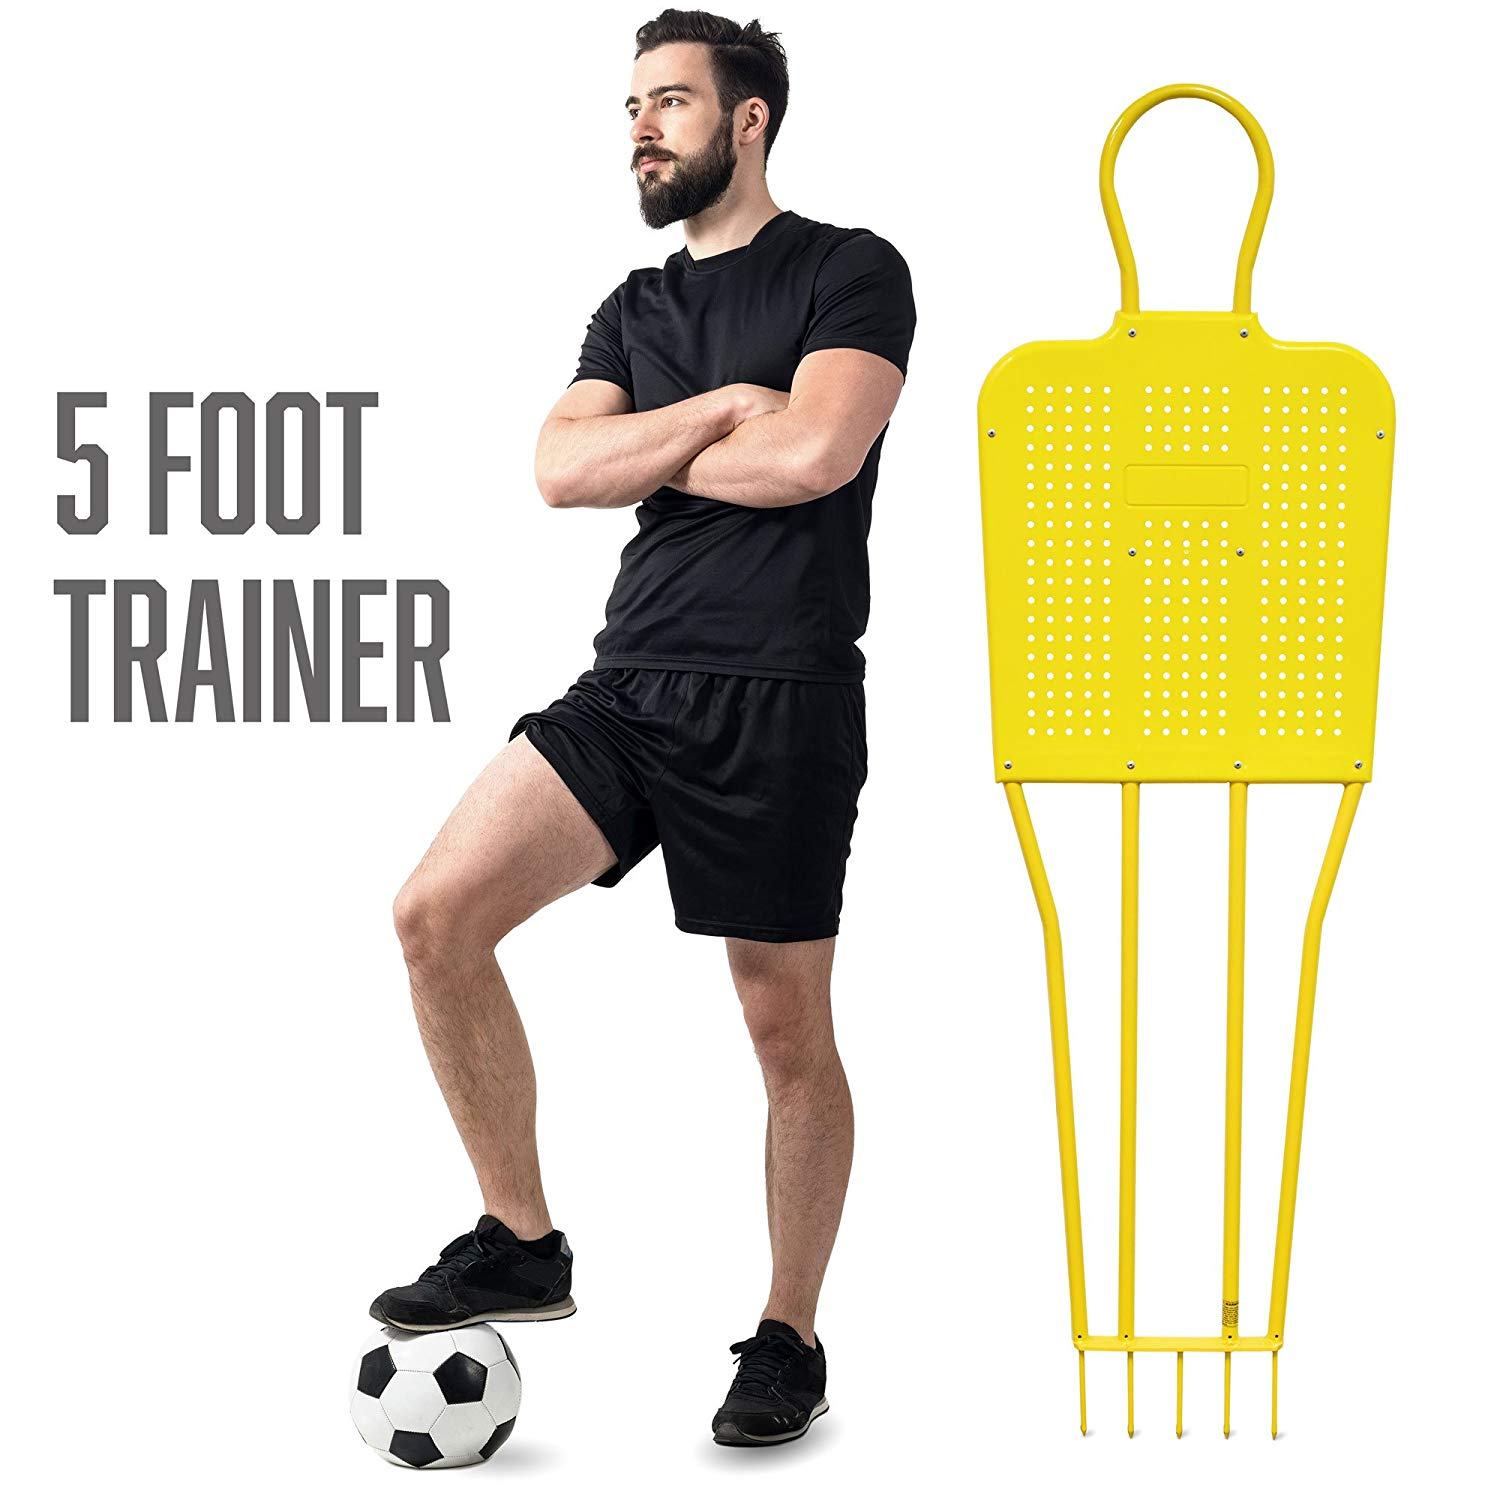 Wholesale Soccer Training Penalty Dummy - Portable Defender for Coaching Free-Kicks, Offense